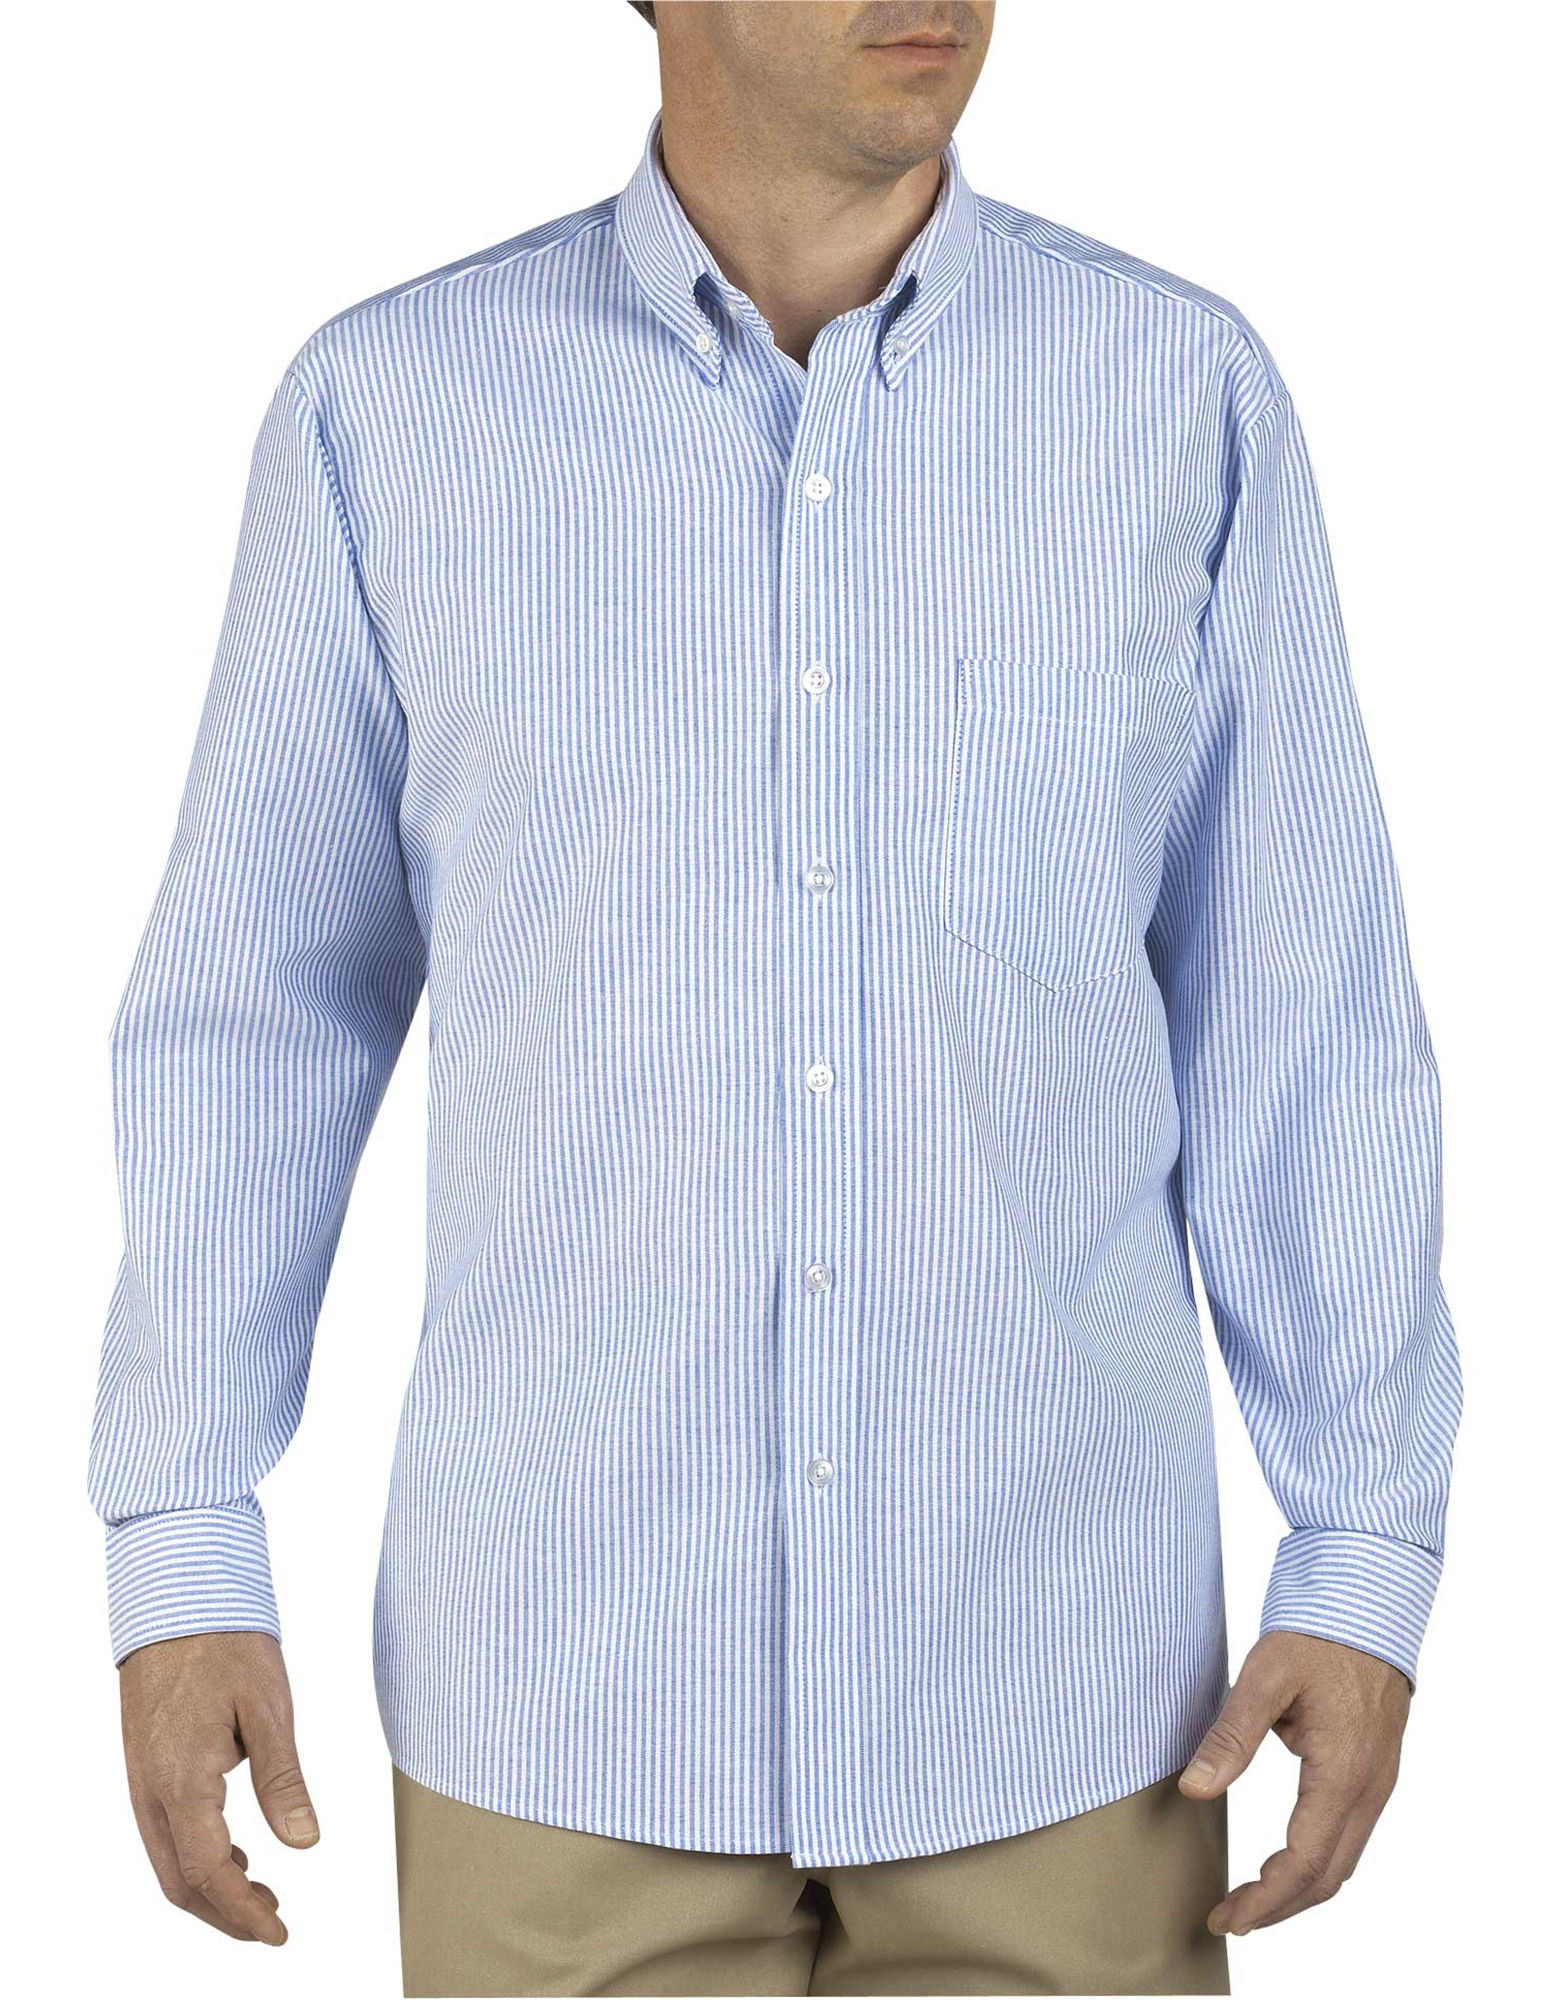 Wholesale Workwear Supplier Uniforms And Flame Resistant Clothing